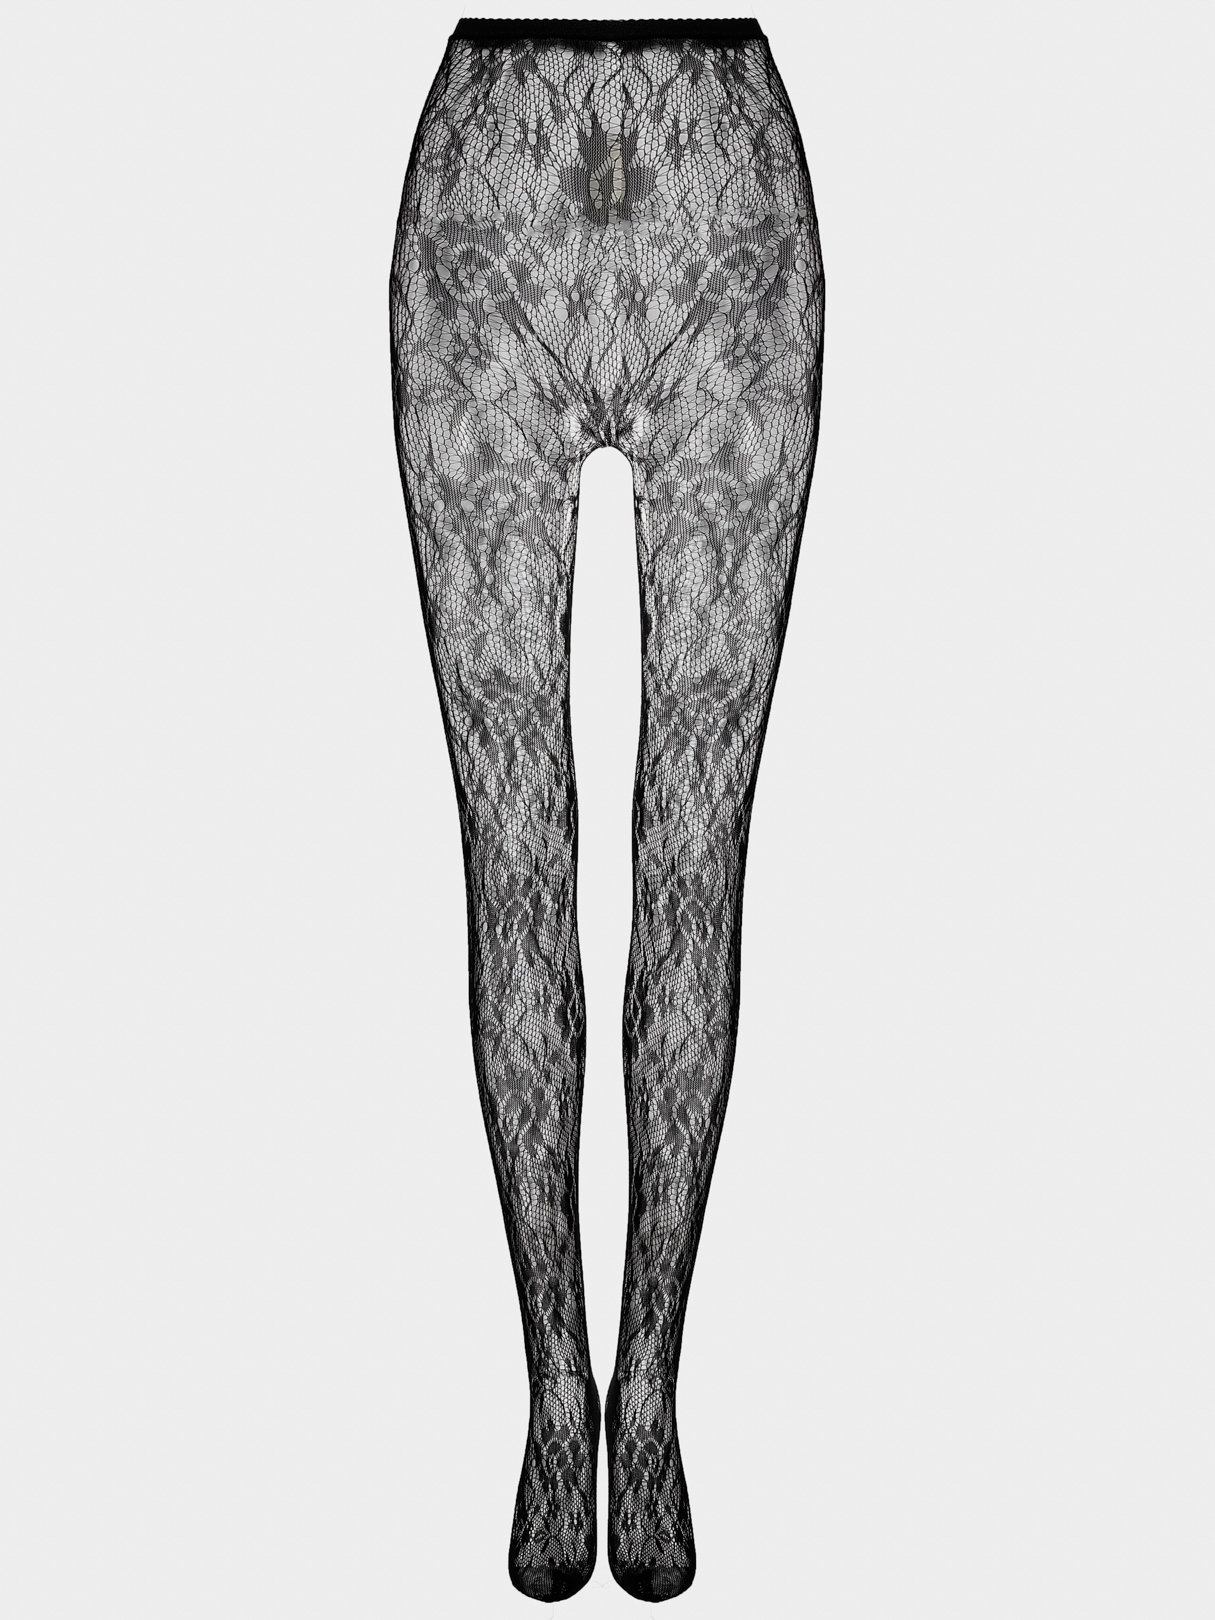 Sexy Floral Pattern Hollow Design Stockings in Black